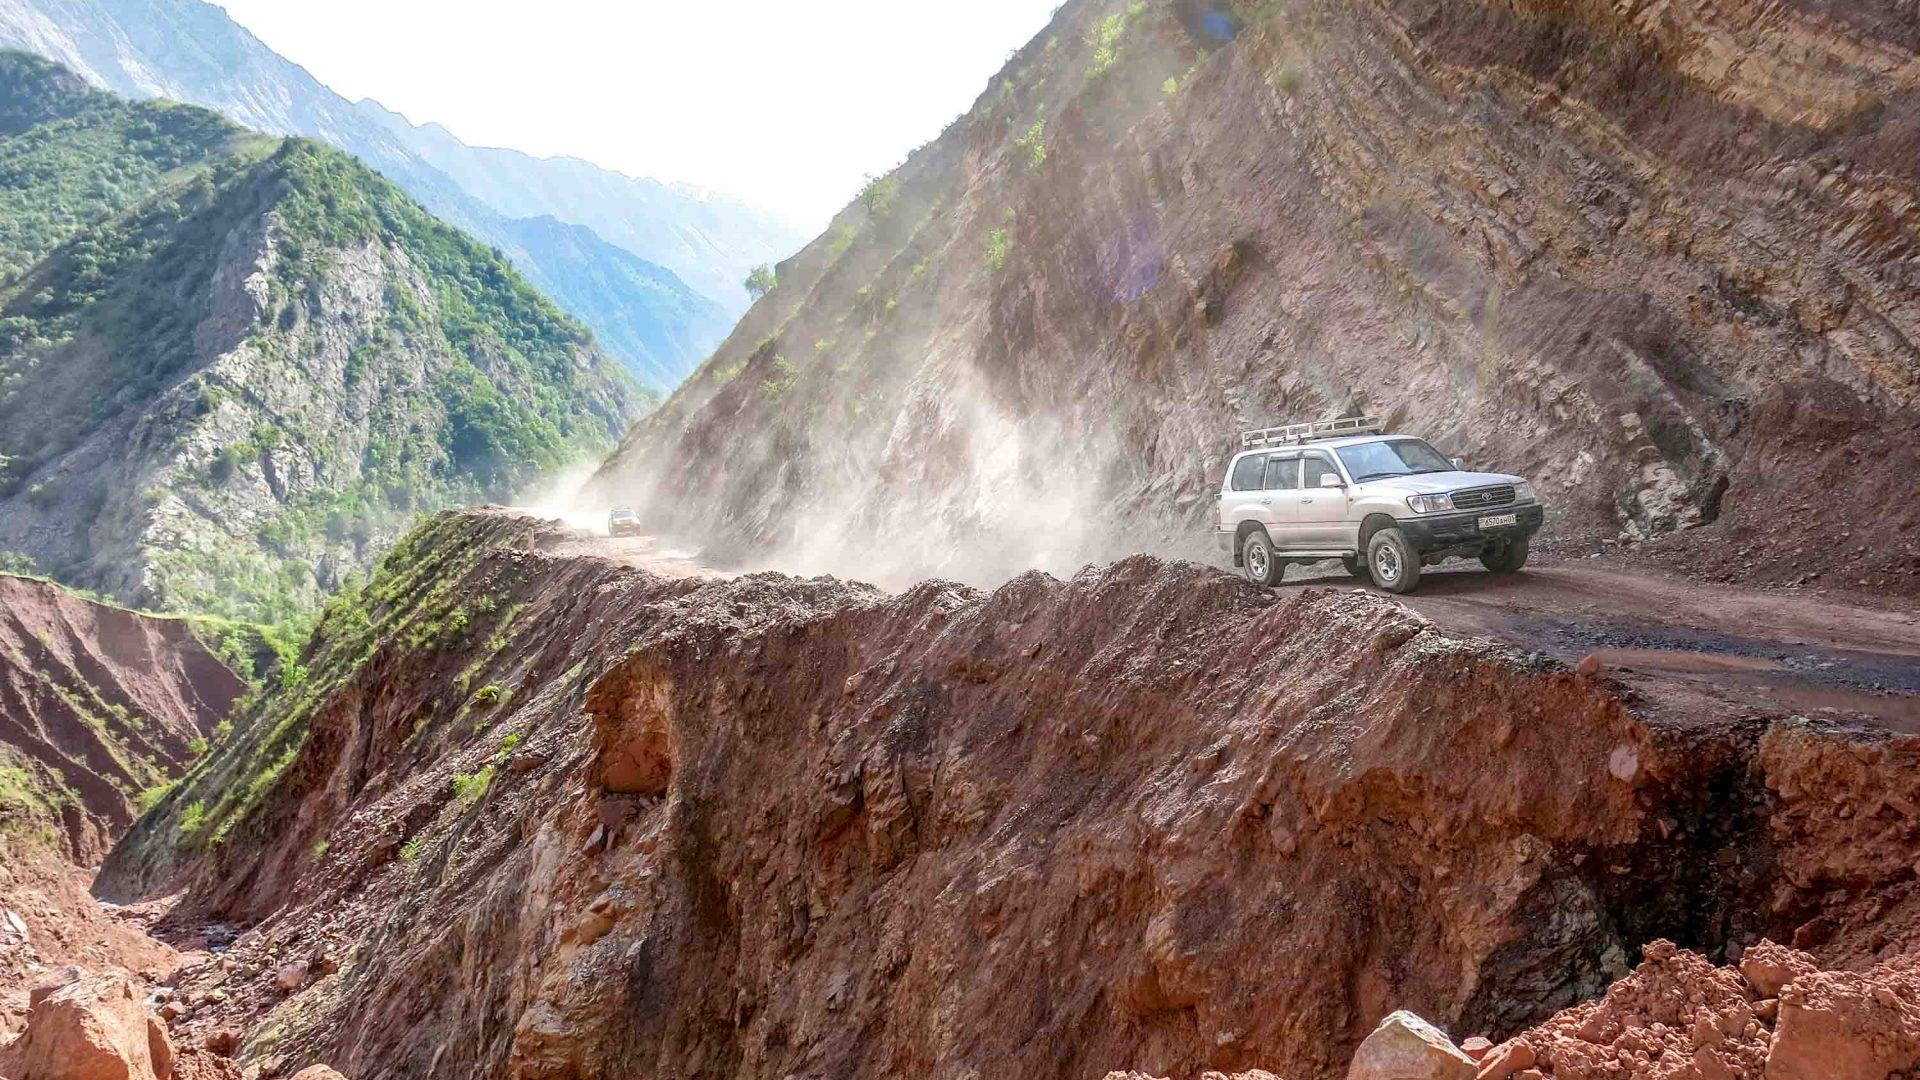 A jeep carrying travelers drives along a treacherous road in the Wakhan, Afghanistan.